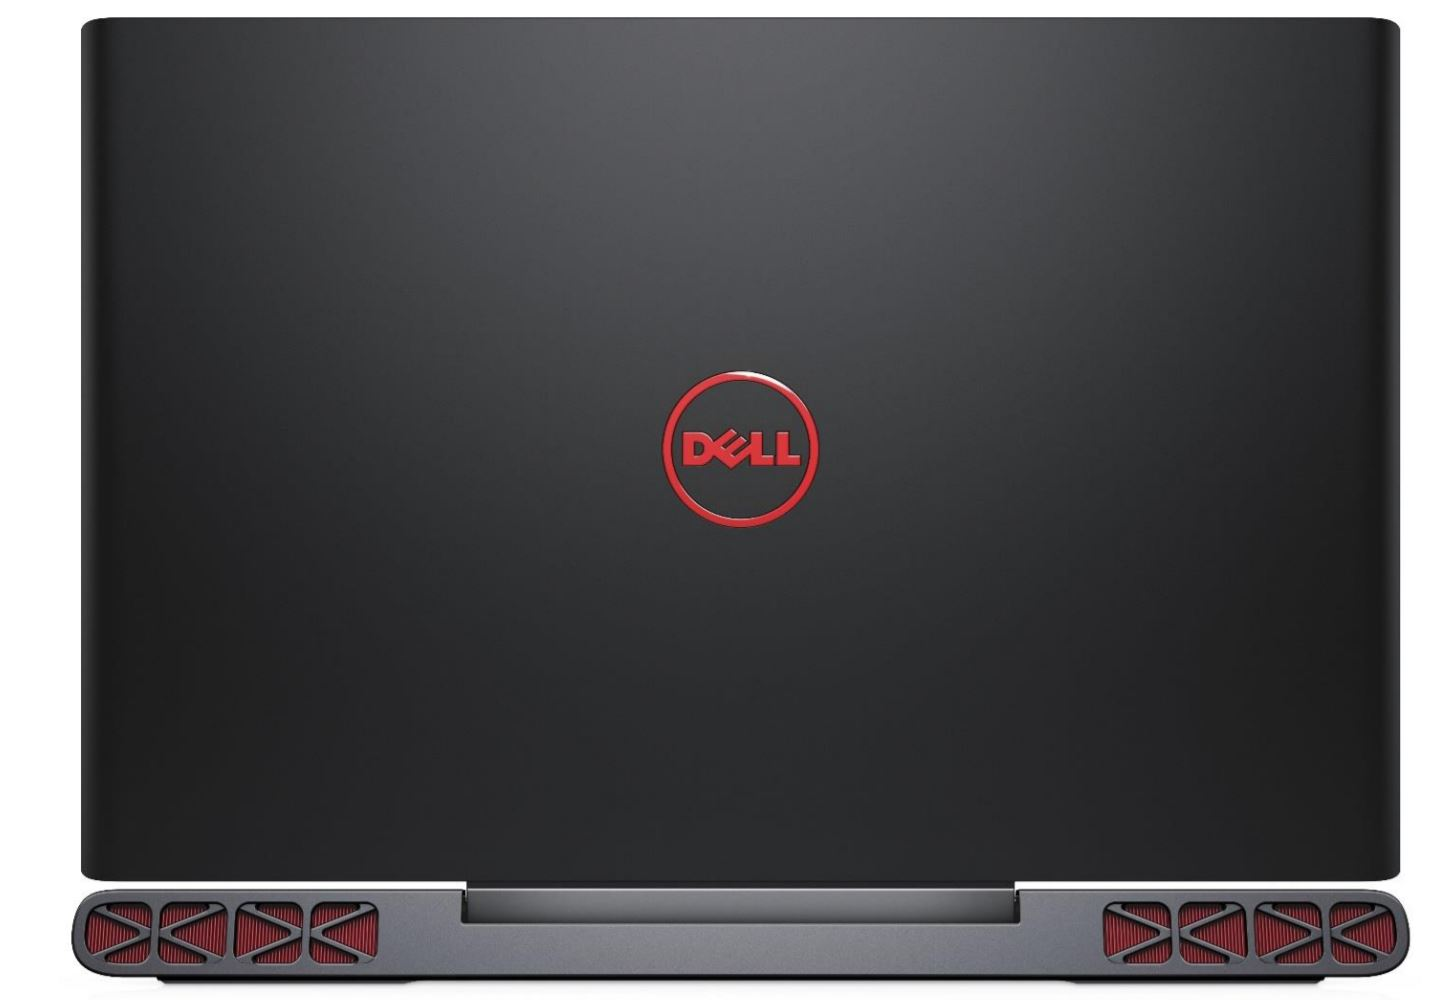 Guide] Dell Inspiron 15 7567 (and similar) (Near-Full ...